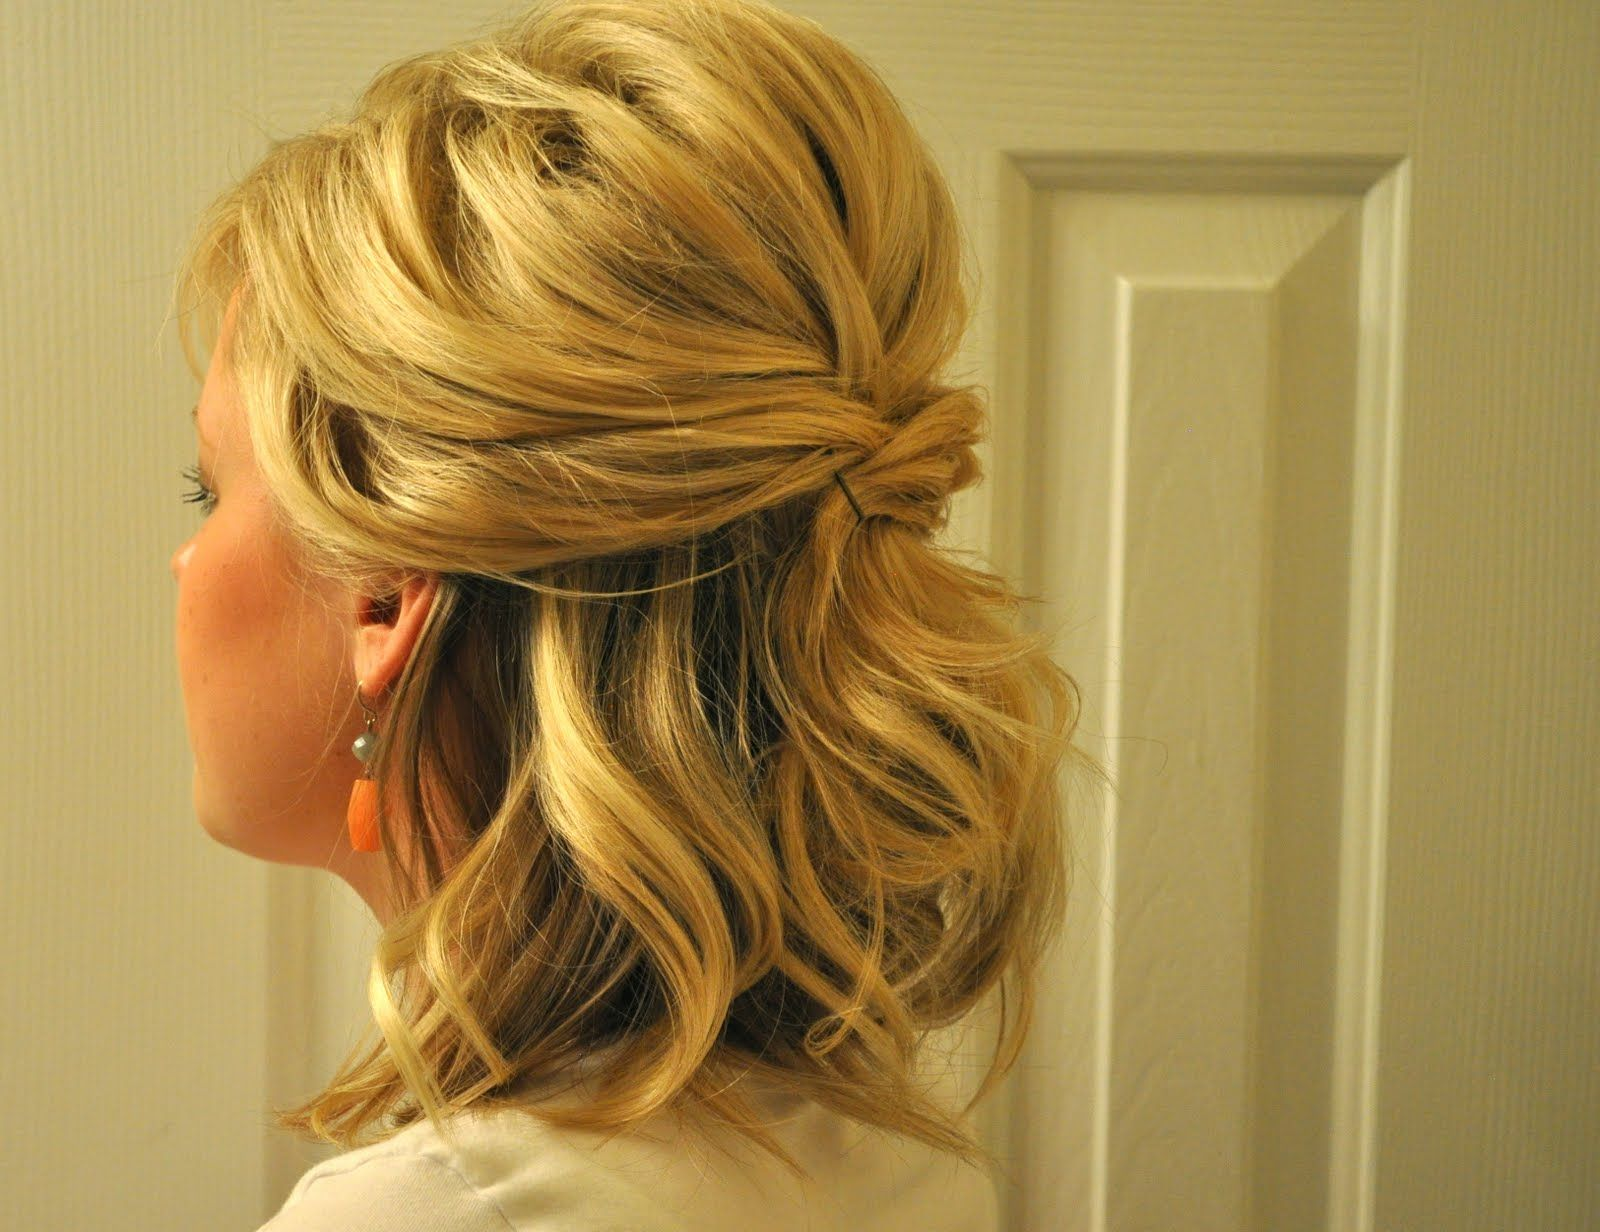 Half up wedding hair I Do Pinterest Hair dos Wedding hair